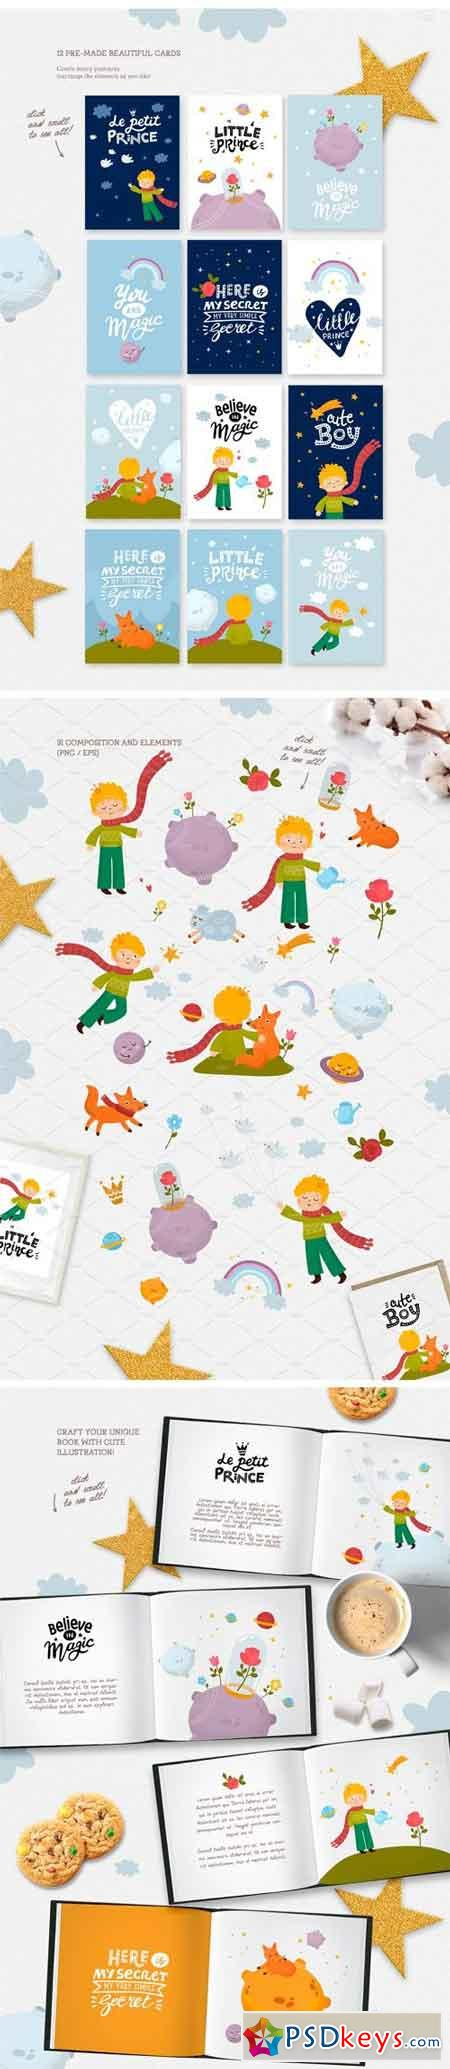 Little Prince Book Creator 2268986